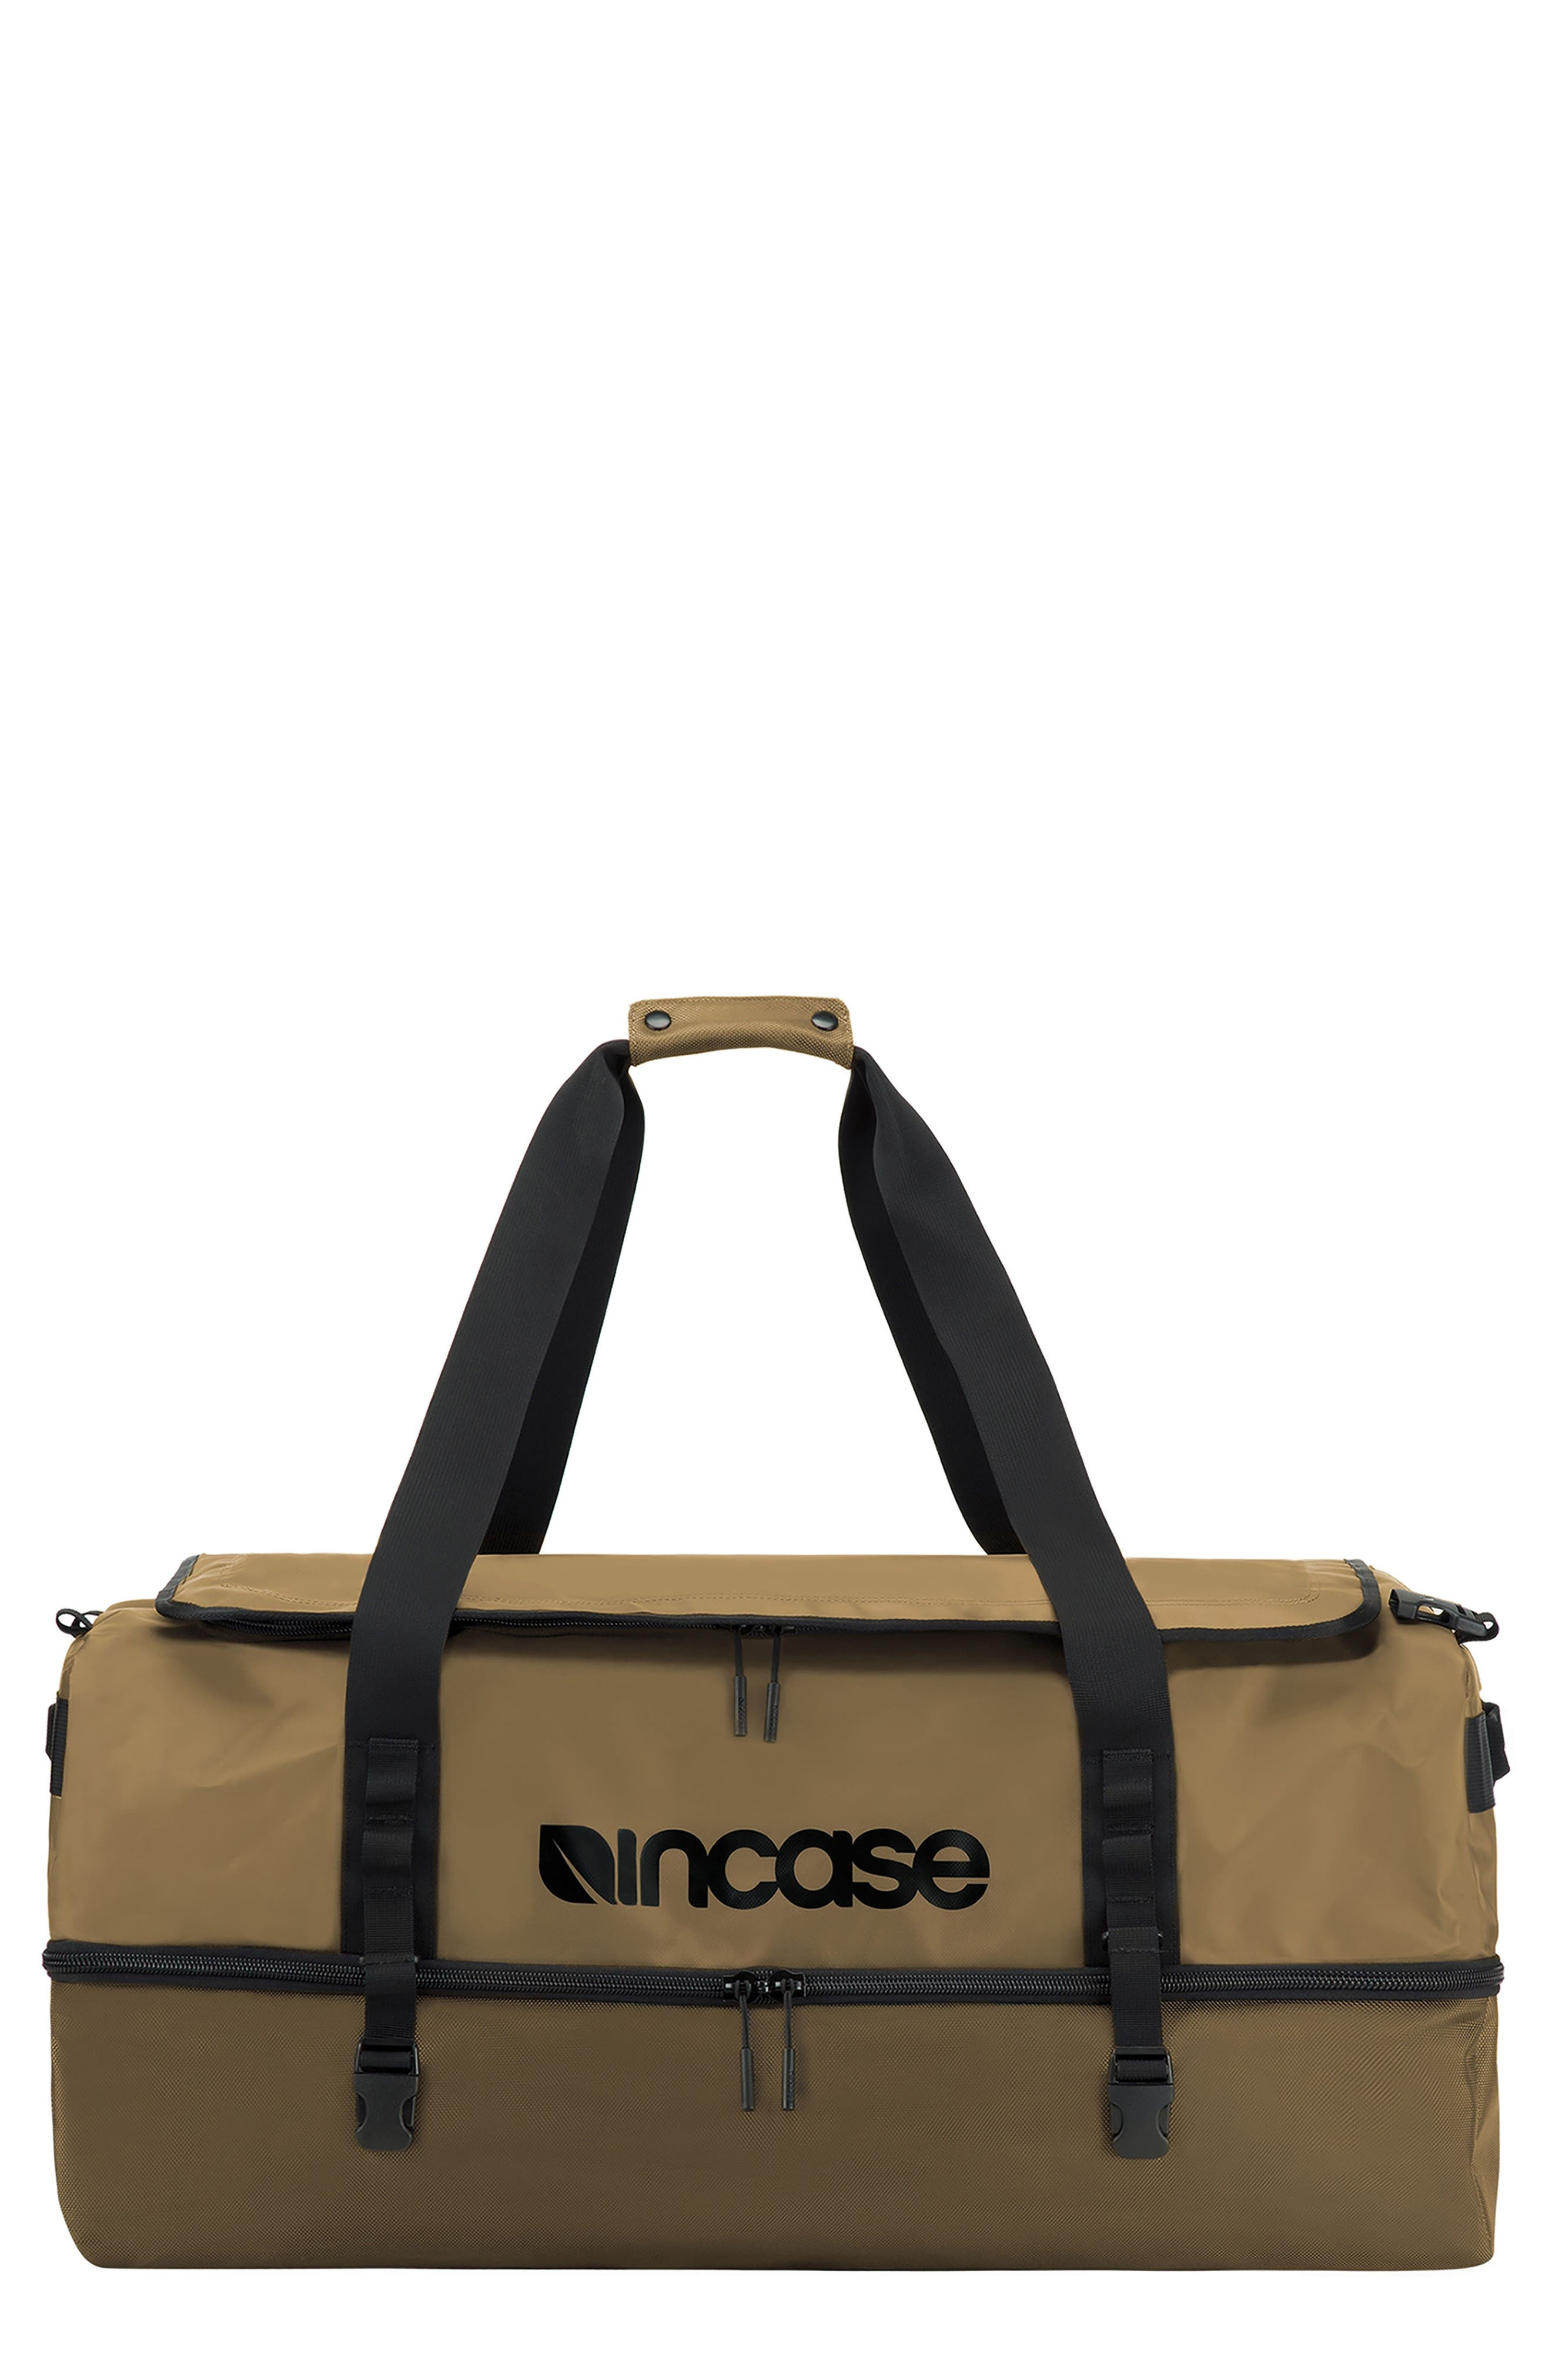 Incase Designs TRACTO Small Split Convertible Duffel Bag